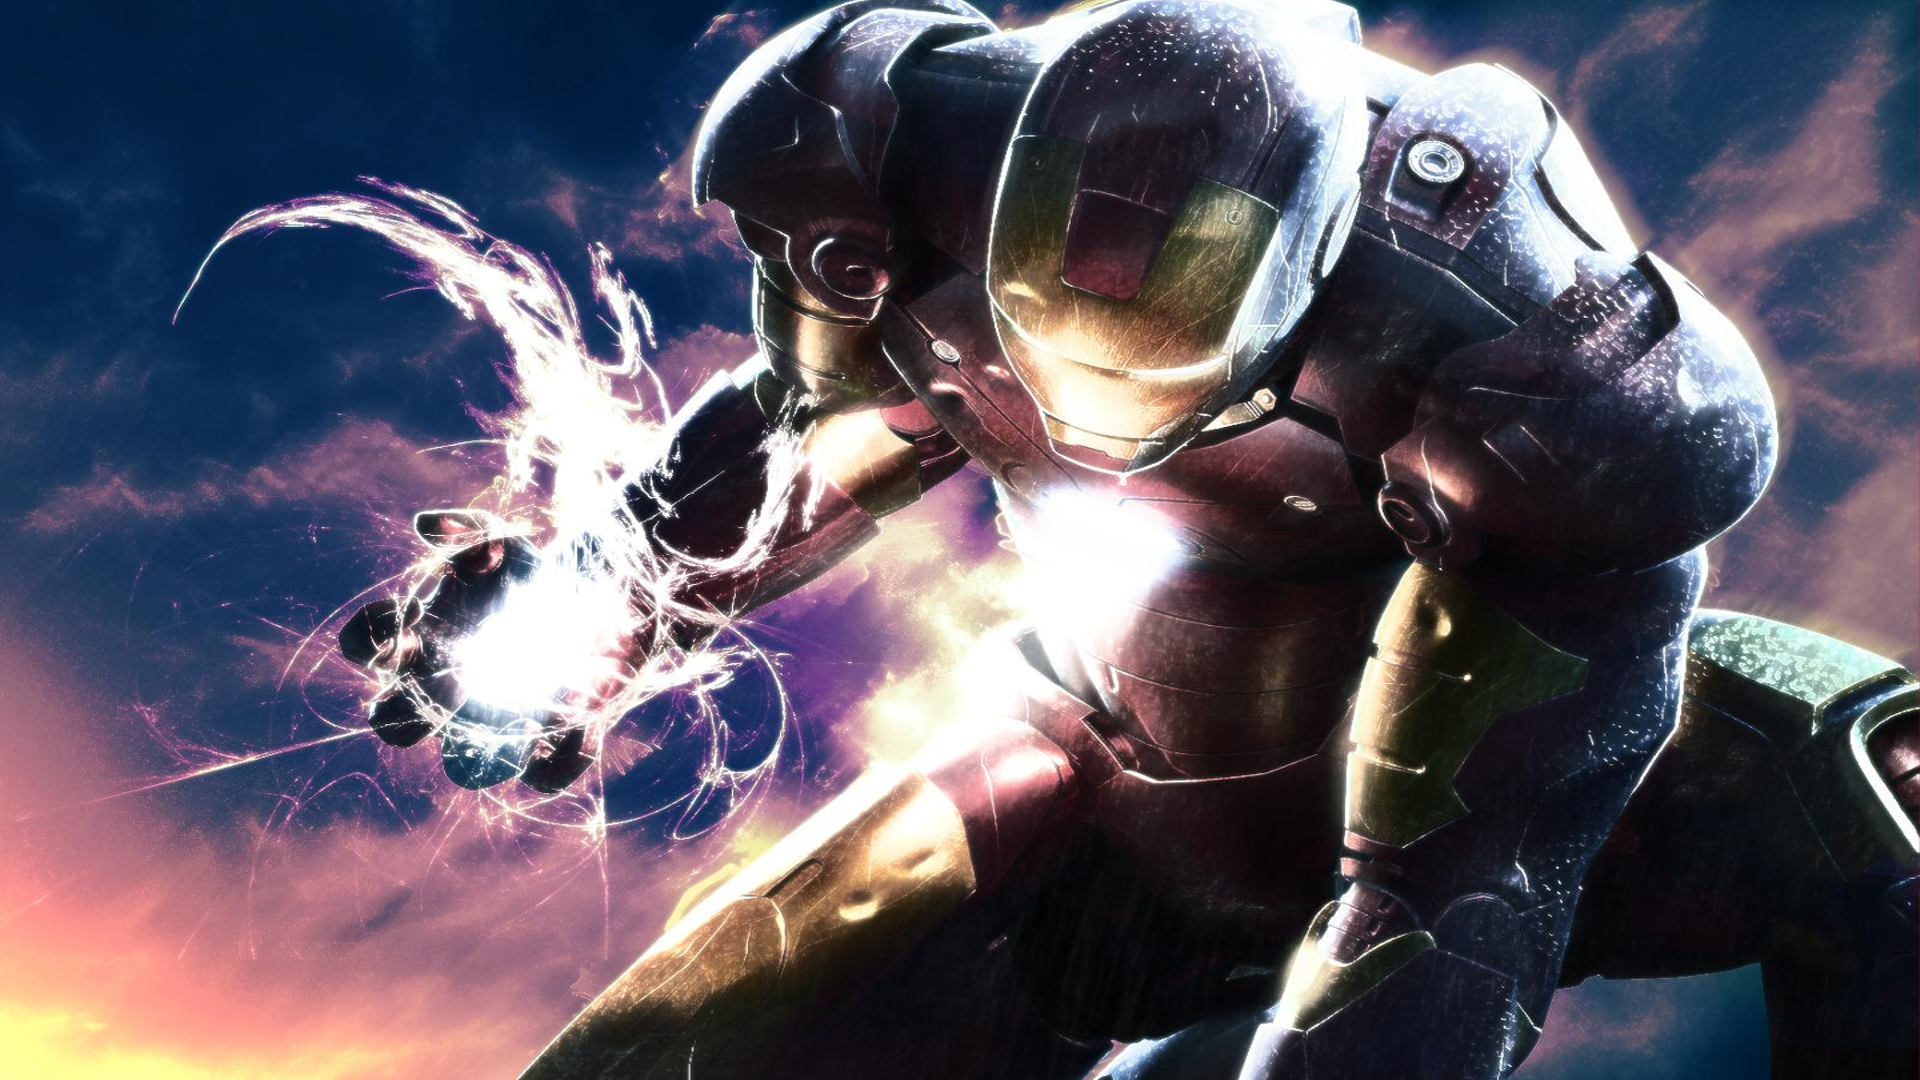 iron man wallpapers android Beautiful Wallpapers 1920x1080